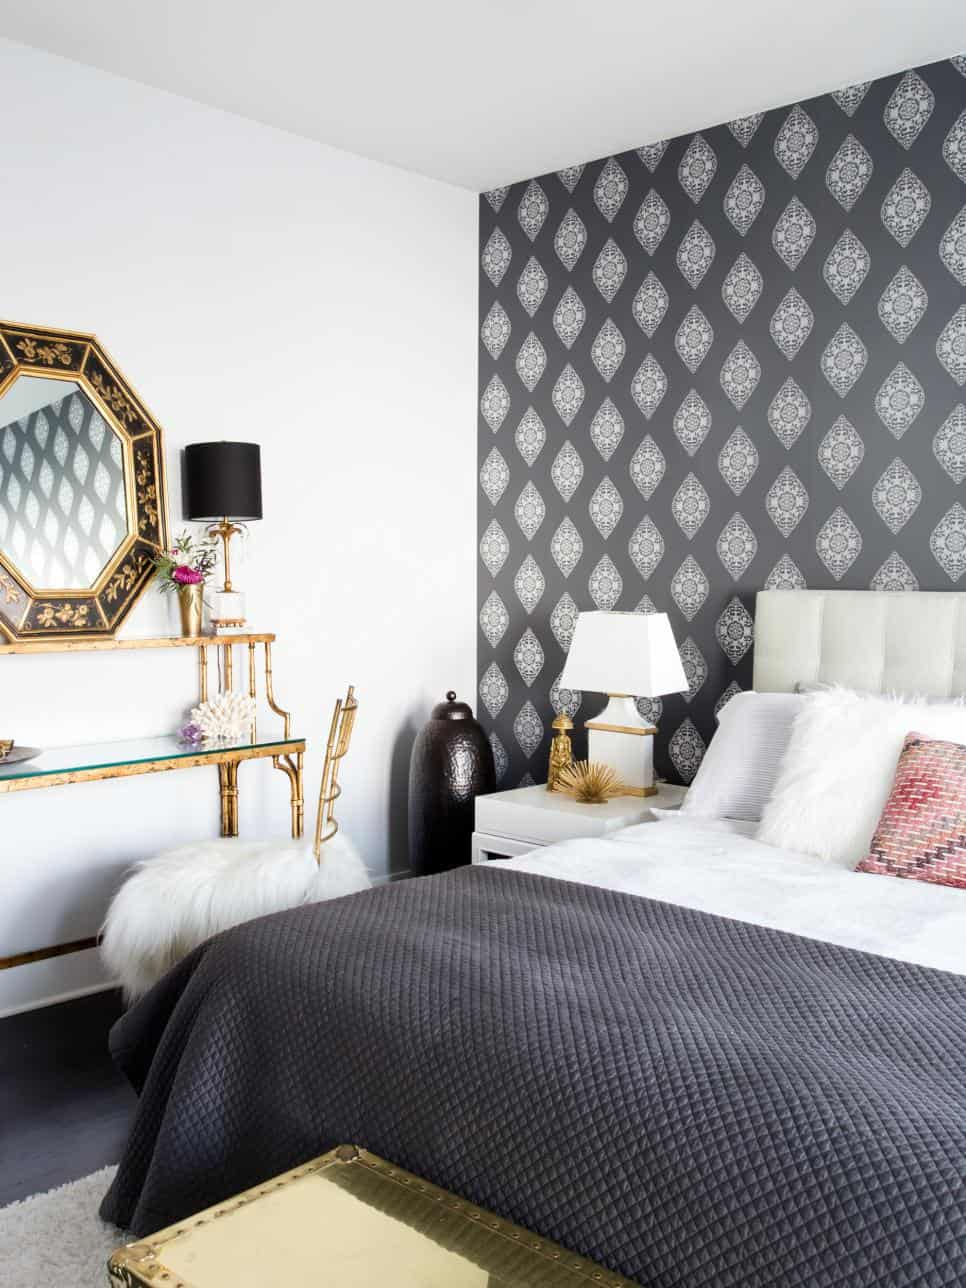 Wallpaper-ed feature wall by Claire Staszak